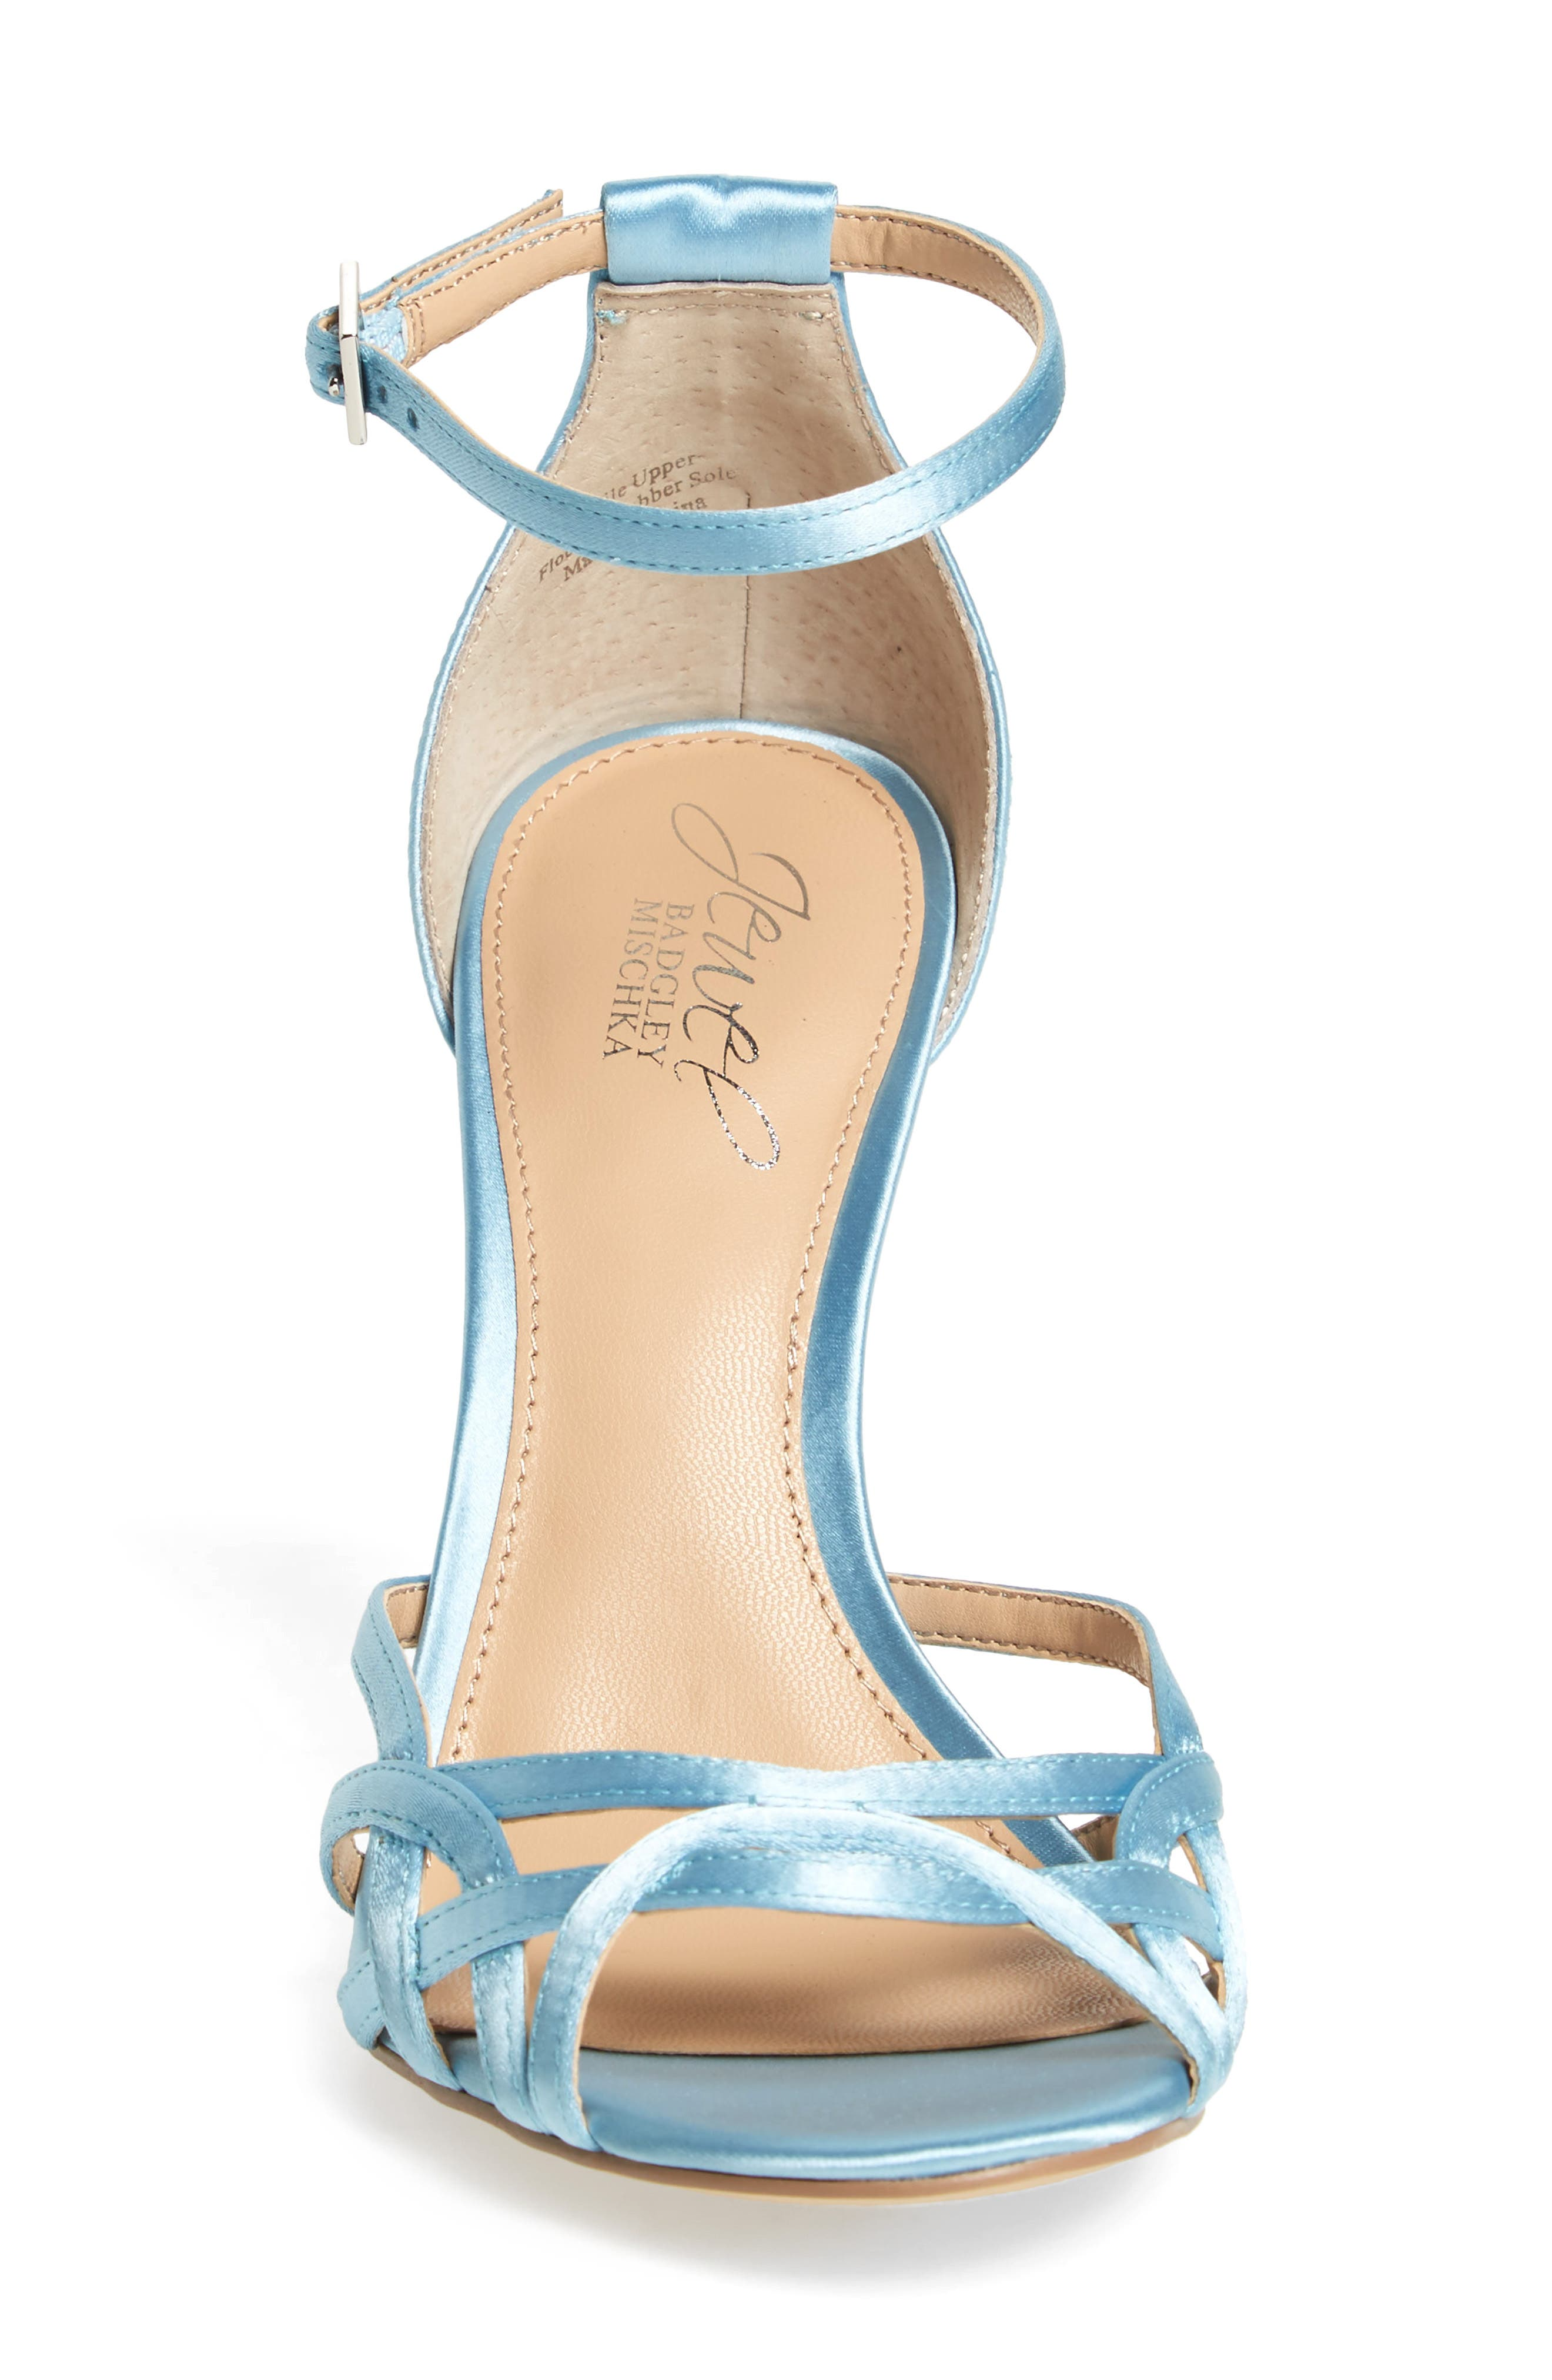 Haskell II Strappy Sandal,                             Alternate thumbnail 13, color,